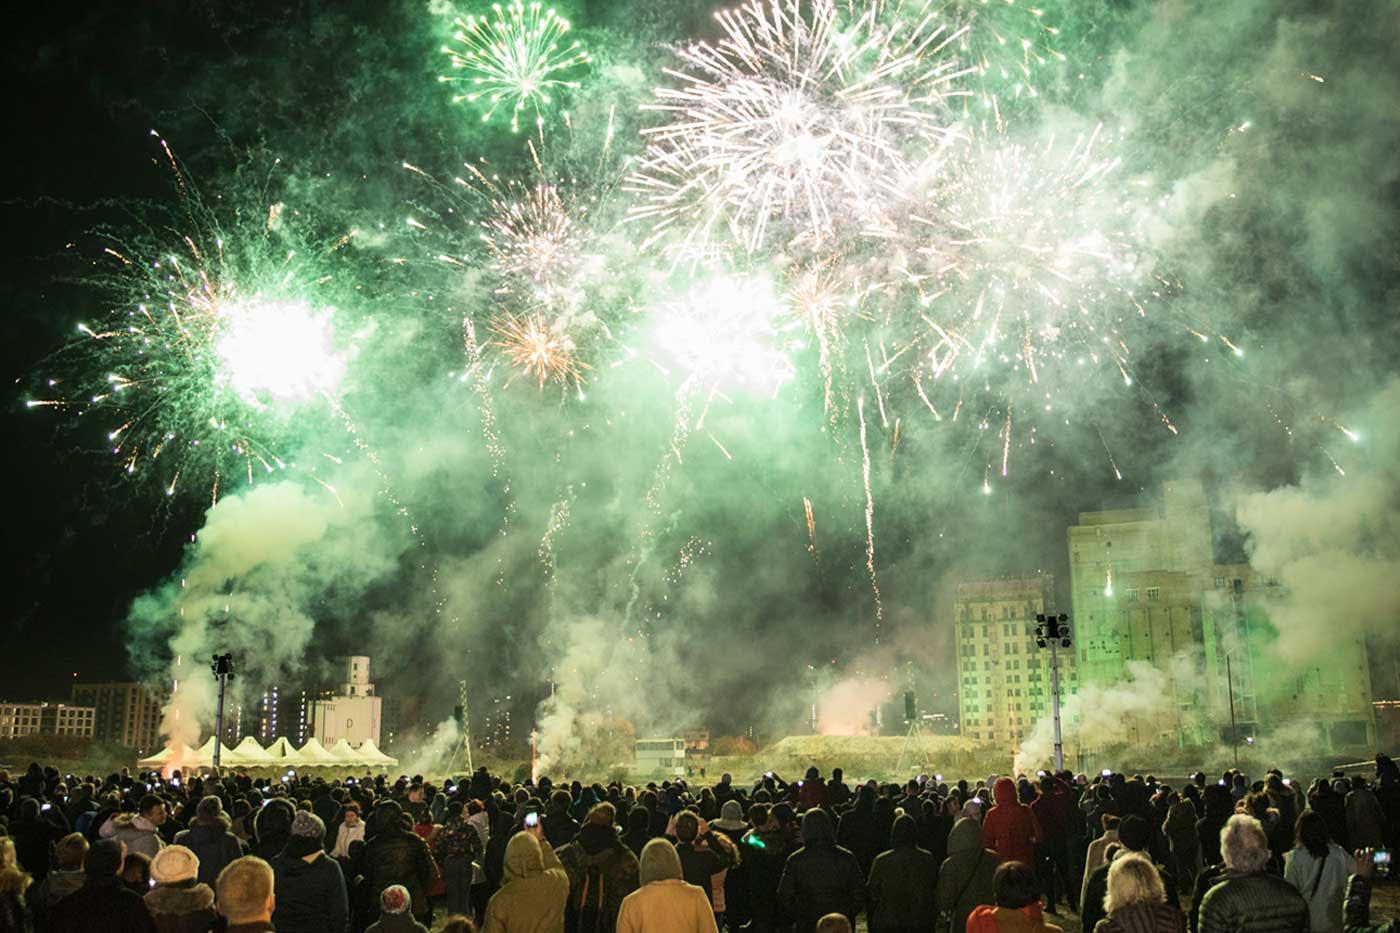 Bright green and white fireworks exploding over a large onlooking crowd